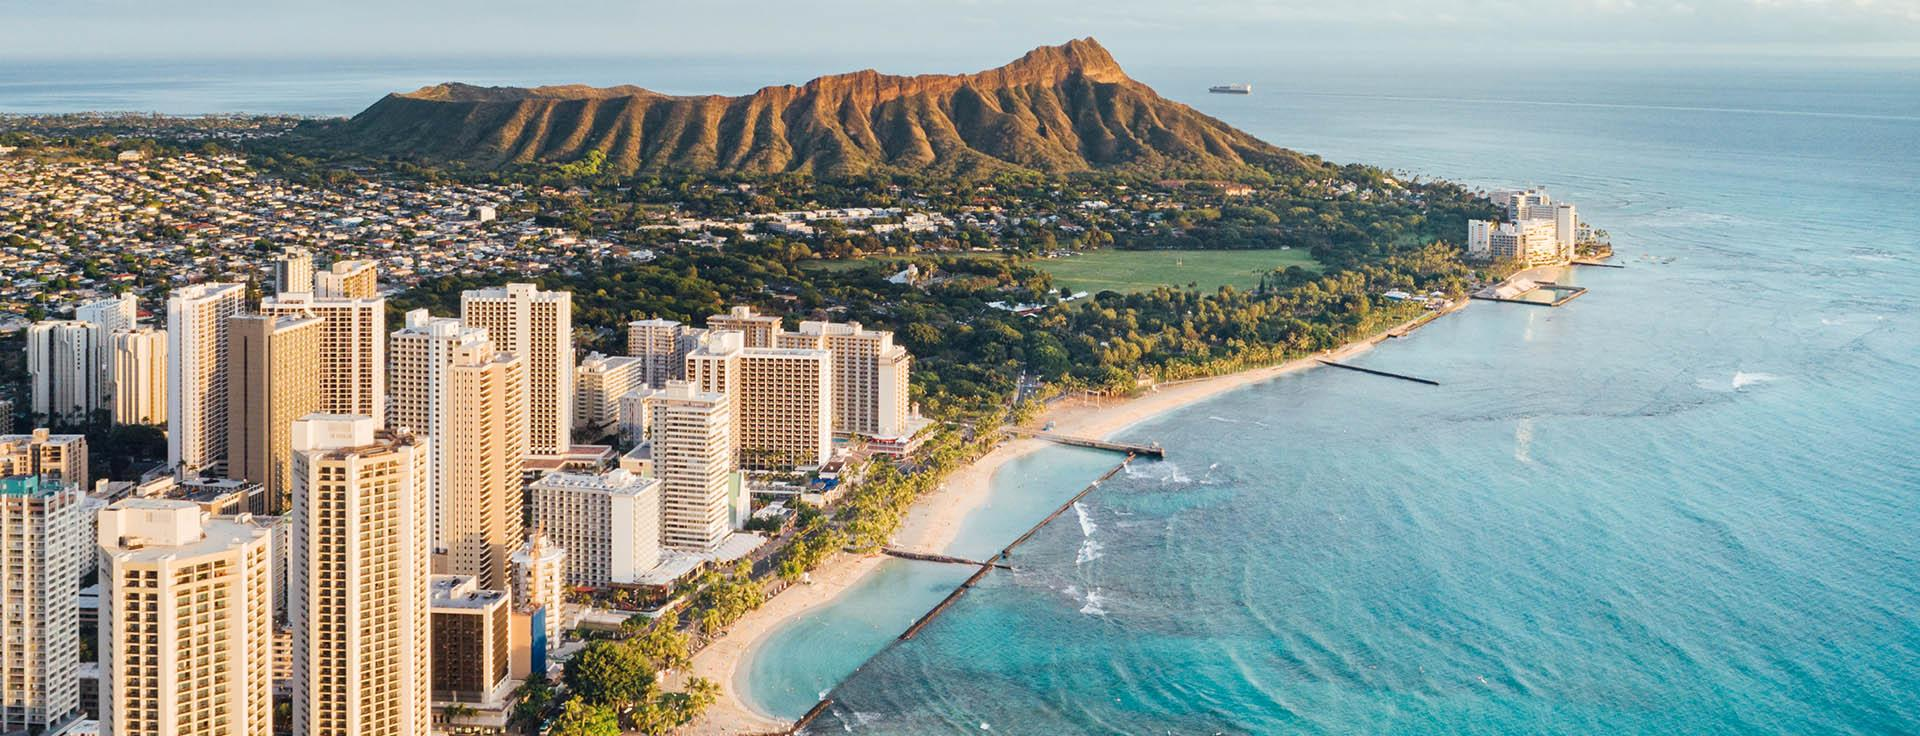 Aerial of Waikiki on Oahu